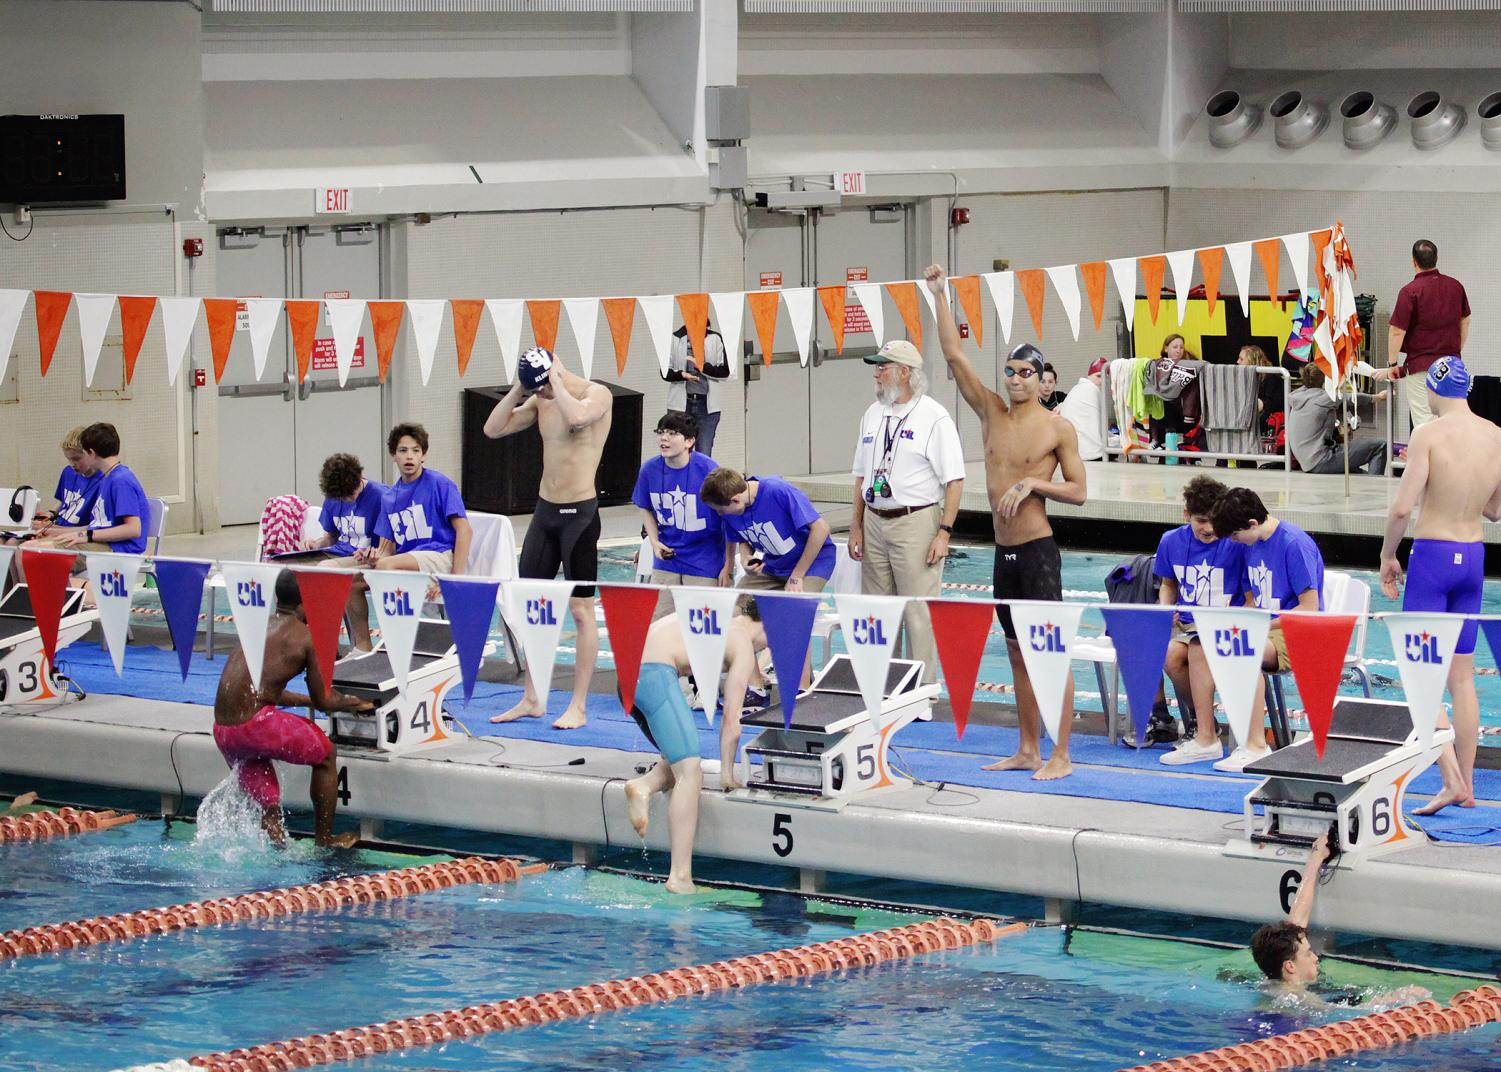 Swimmers+preparing+to+start+the+race.